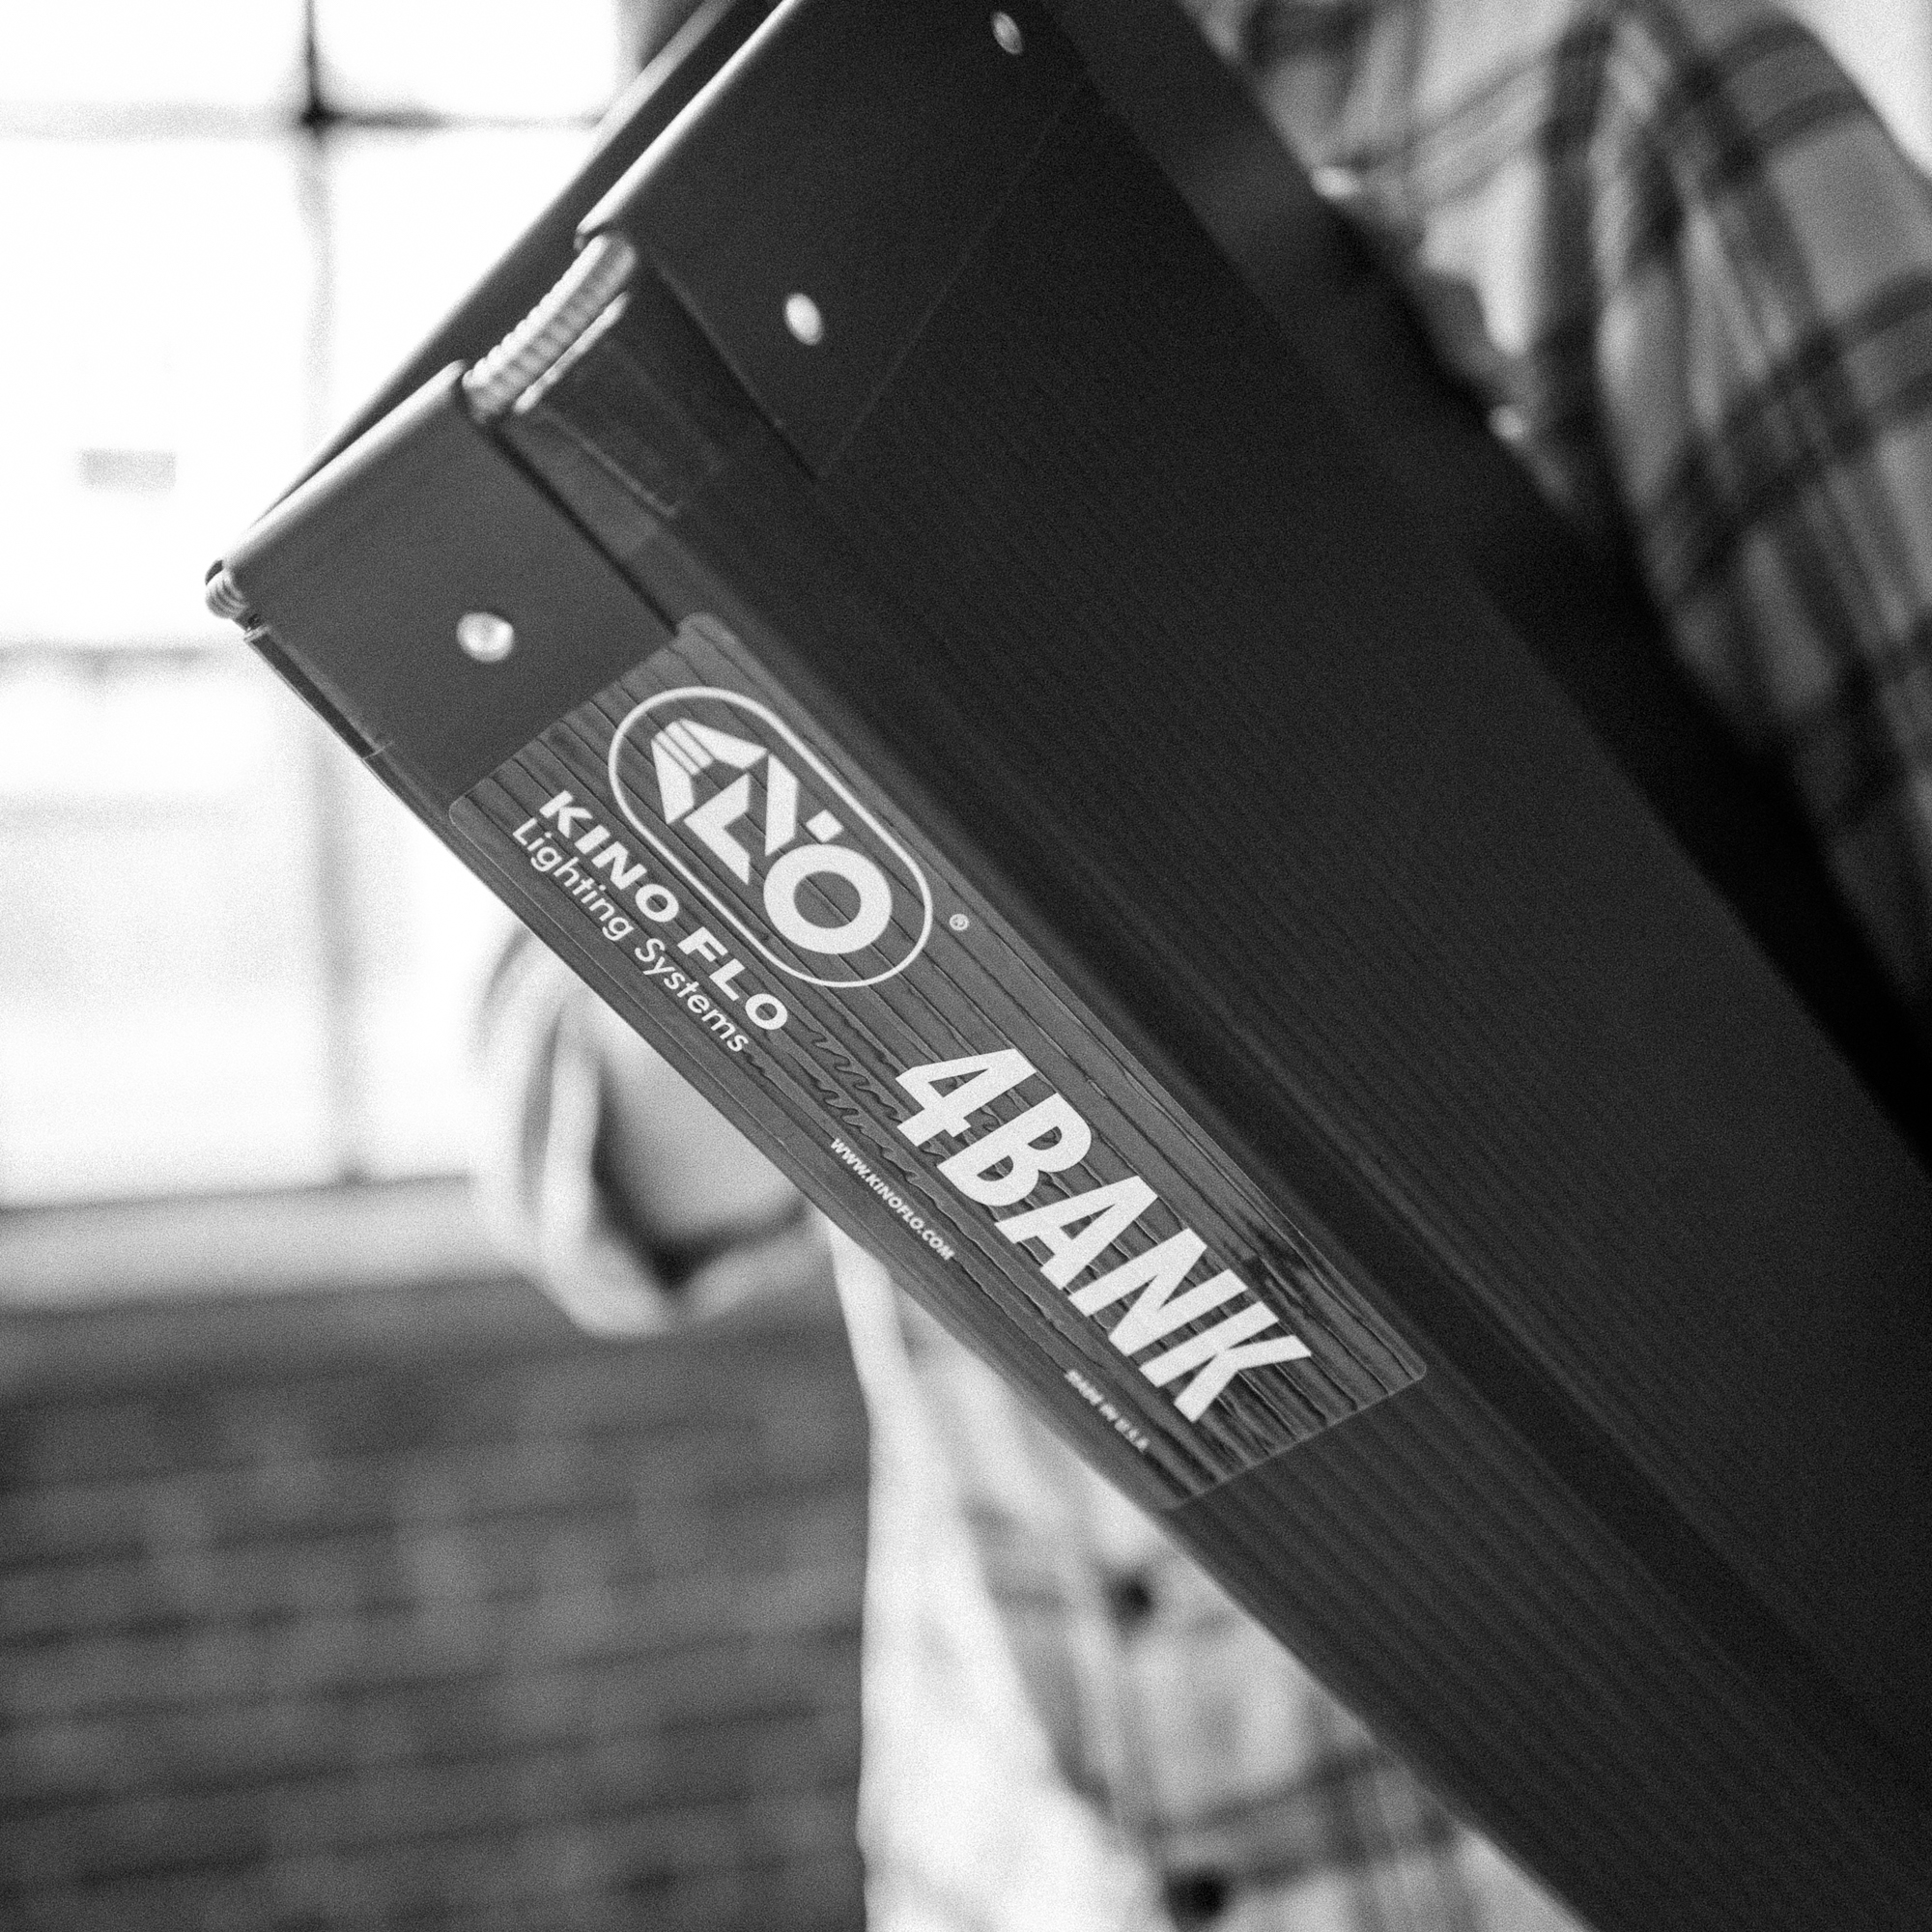 KinoFlo 2' 4 Bank - Single   55/day, 220/week, 27/day in studio   Single 4' 4 bank Kino fixtures with daylight and tungsten bulbs. Comes in soft case.  Switch to DMX ballast for an additional 15/day